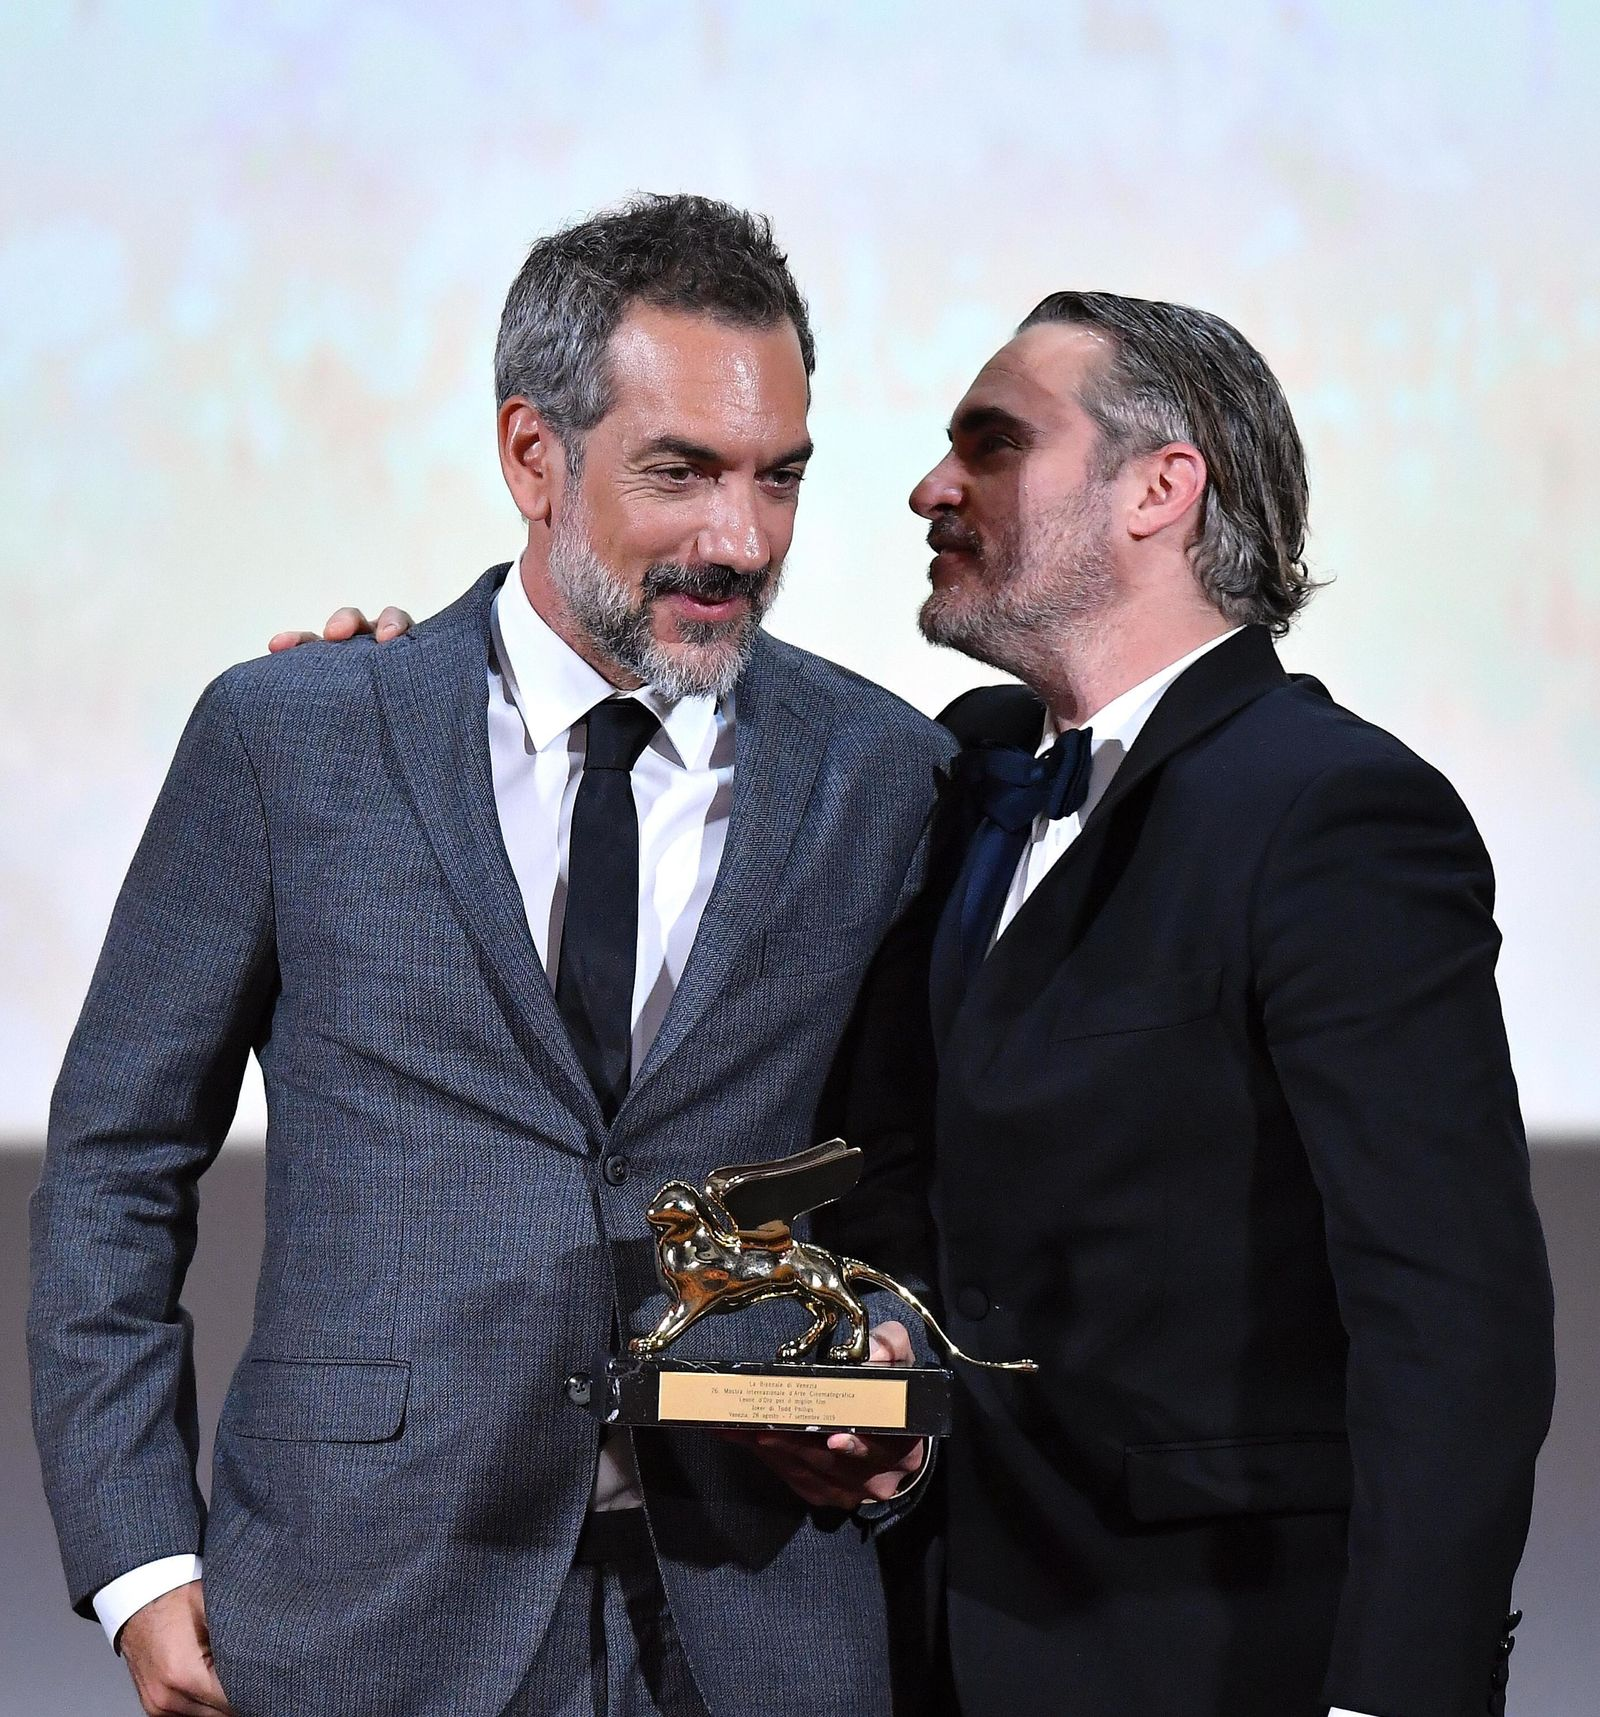 US actor Joaquin Phoenix, right, and US director, Todd Phillips, hold the Golden Lion award for the movie 'Joker' i during the awarding ceremony of the 76th annual Venice International Film Festival in Venice, Italy, Saturday, Sept. 7, 2019. (Ettore Ferrari/ANSA via AP)